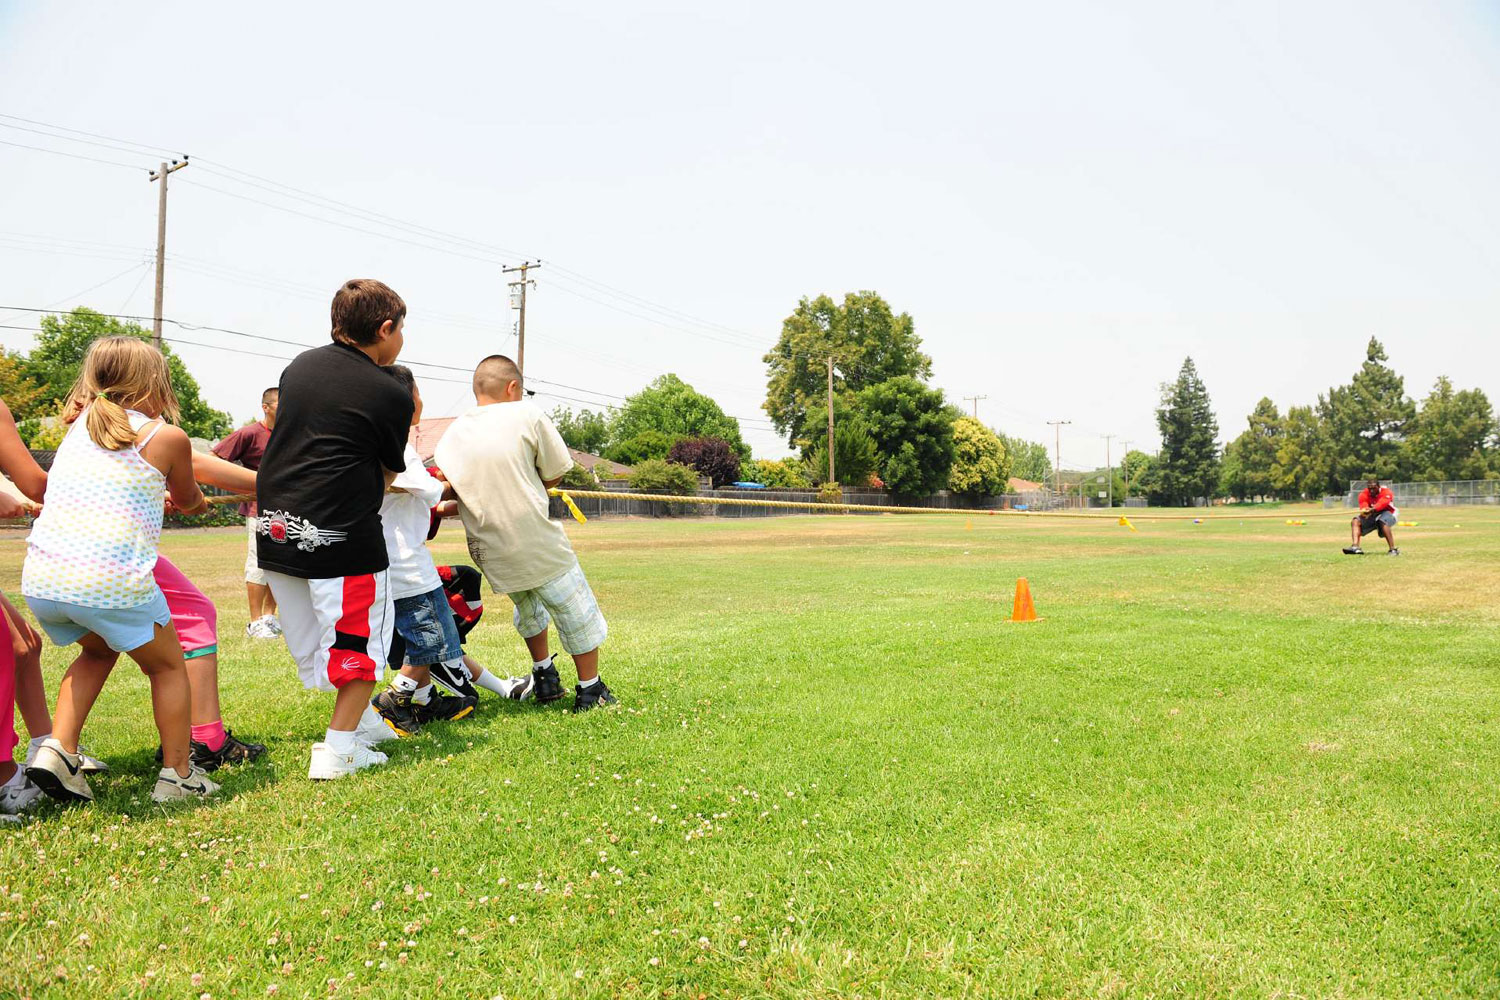 San Francisco 49ers linebacker Patrick Willis participating in an elementary school gym class at Briarwood Elementary in Santa Clara, CA in June 2008.